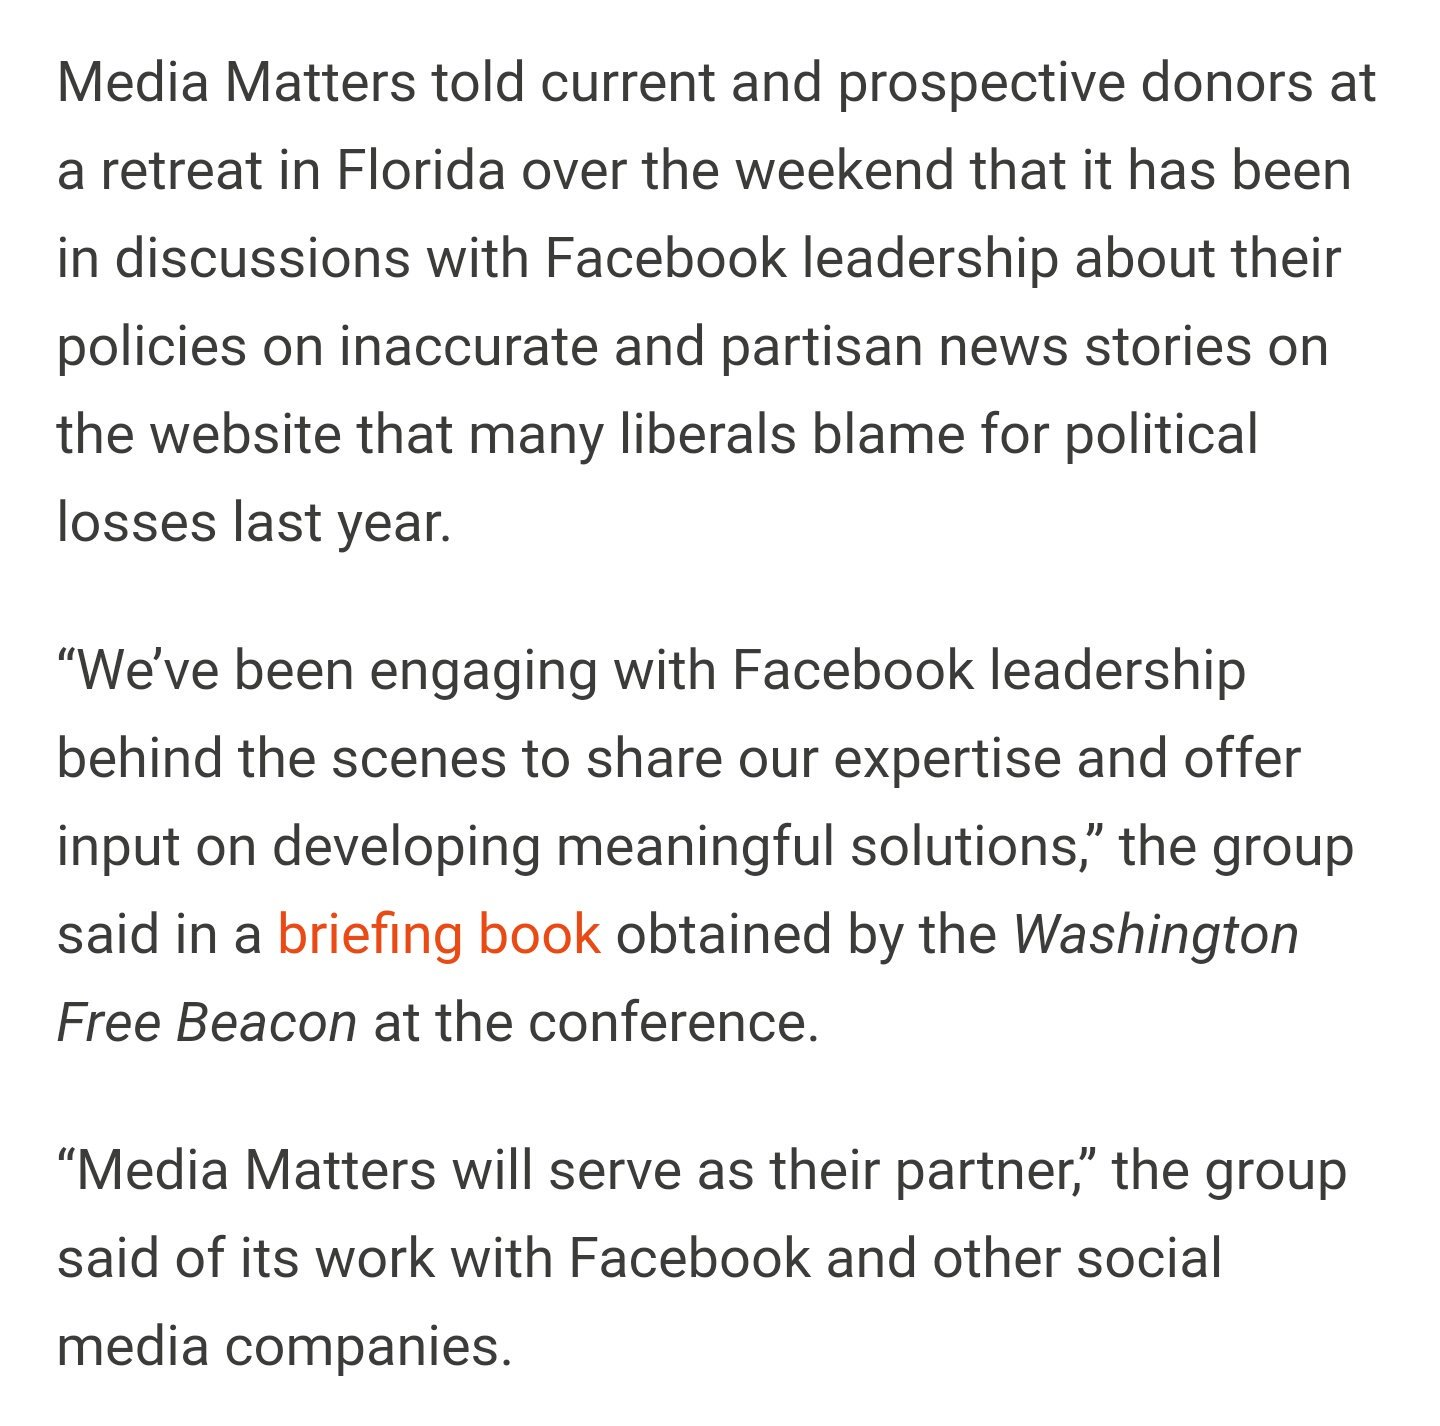 This is a bad look for Facebook https://t.co/b7zbI1vfac https://t.co/Zs3lFVDt1e